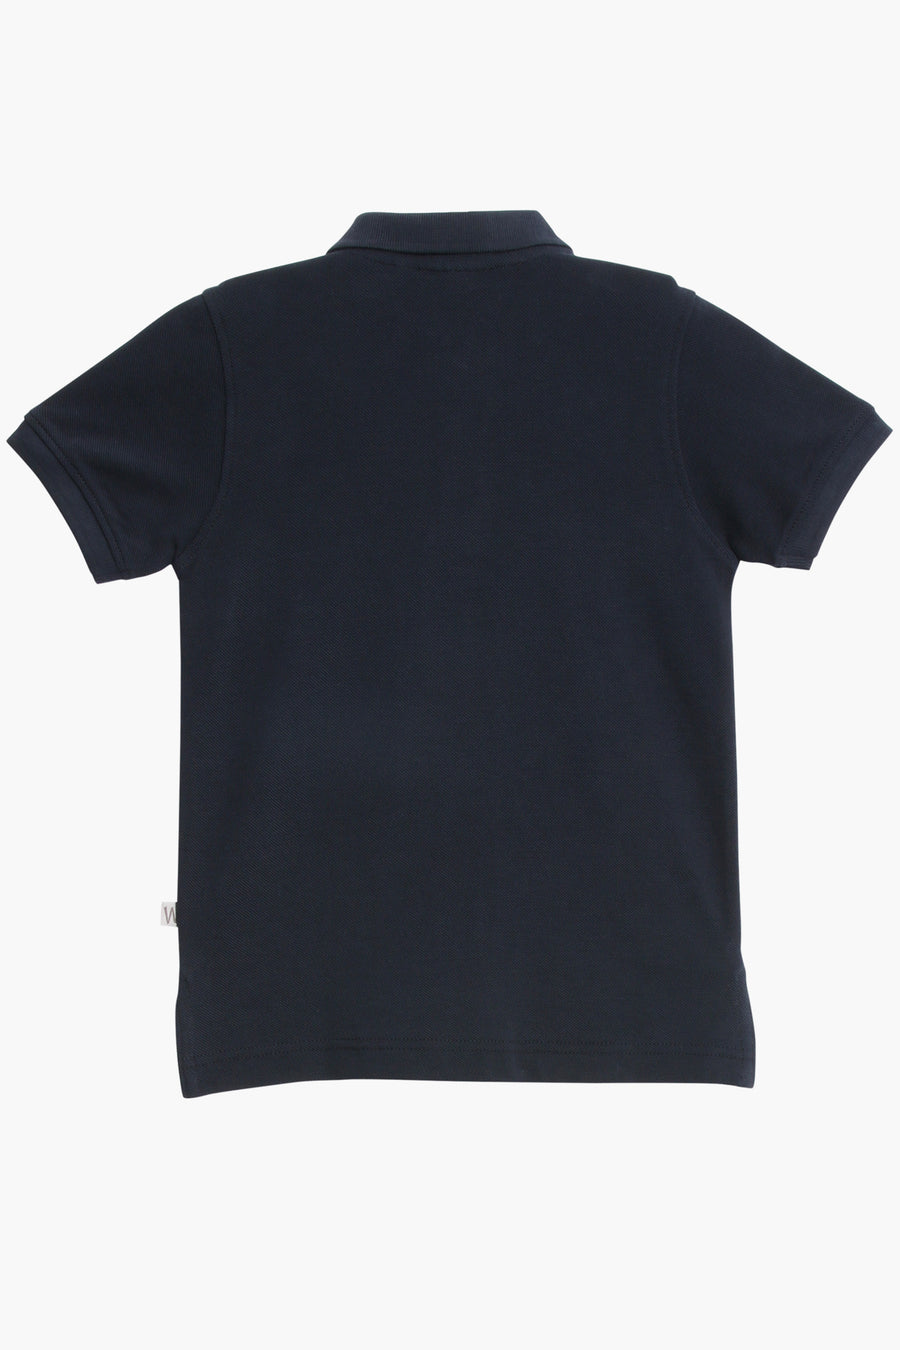 Wheat Anchor Polo - Navy